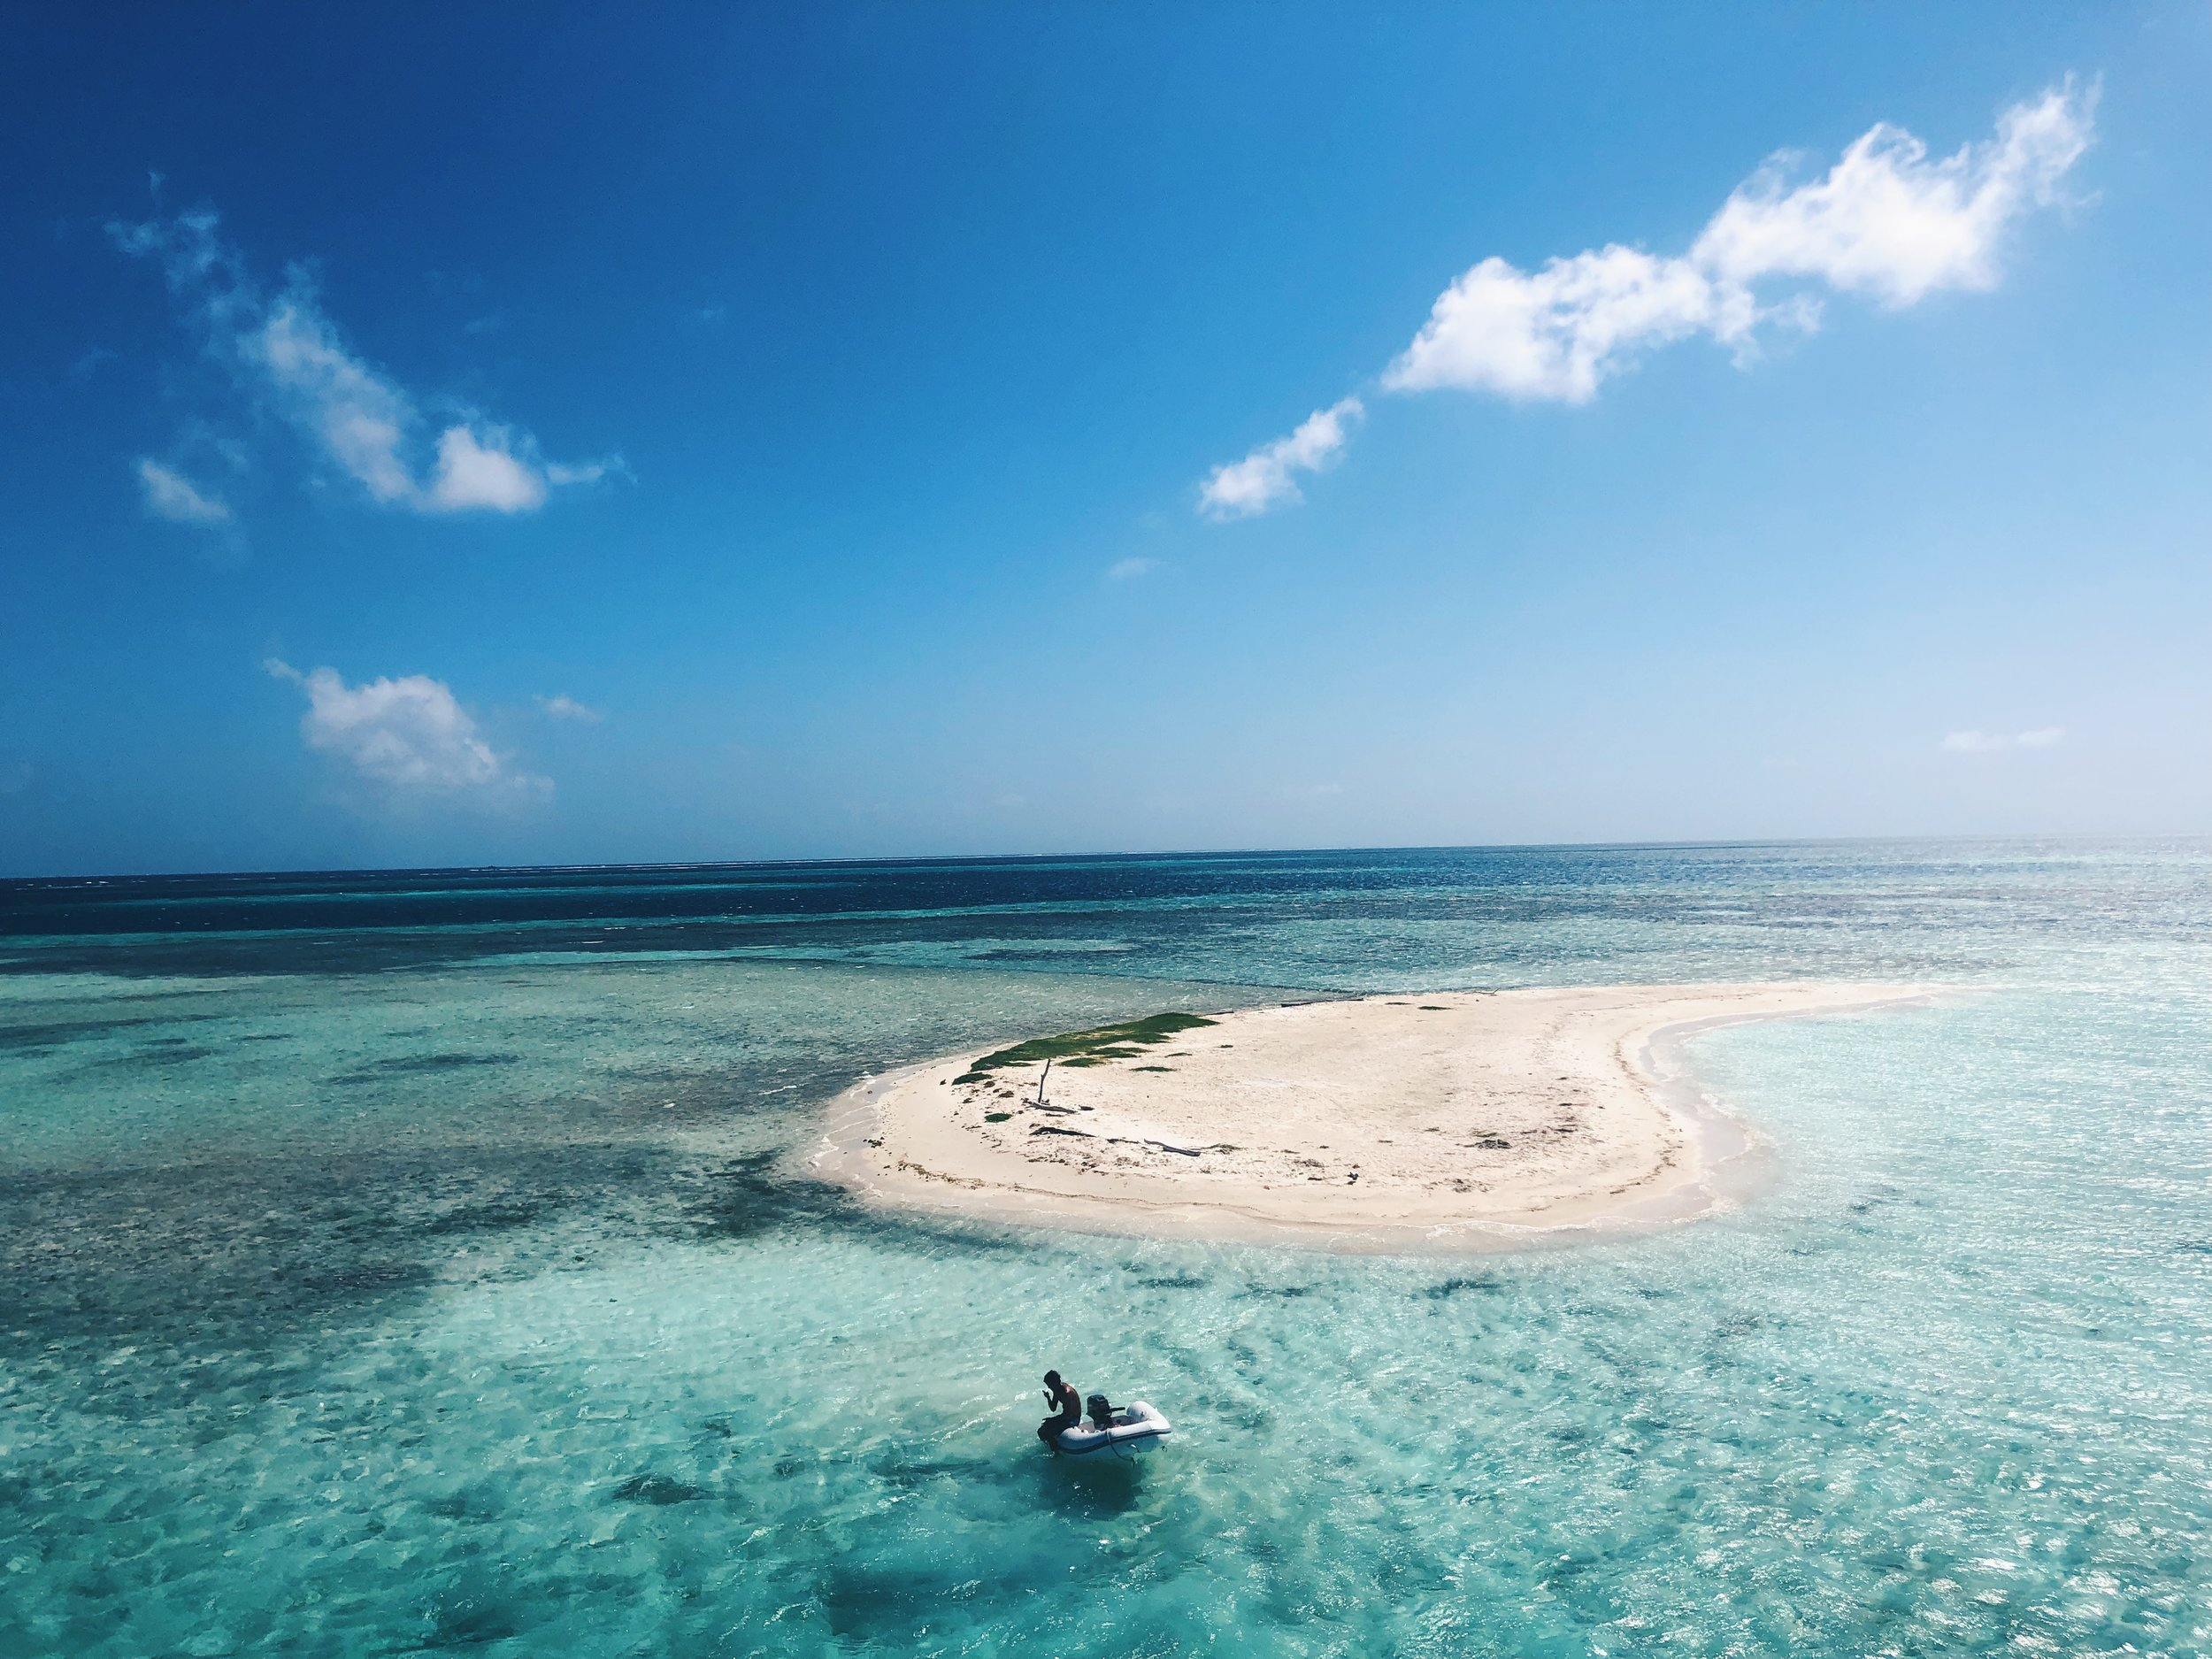 PARADISE IS RESERVED FOR YOU - Yanes Yachting offers the opportunity to visit staggering beaches at secluded locations. Live your own adventures and take in the breathtaking views, all while aboard one of Yanes Yachting charter yachts.